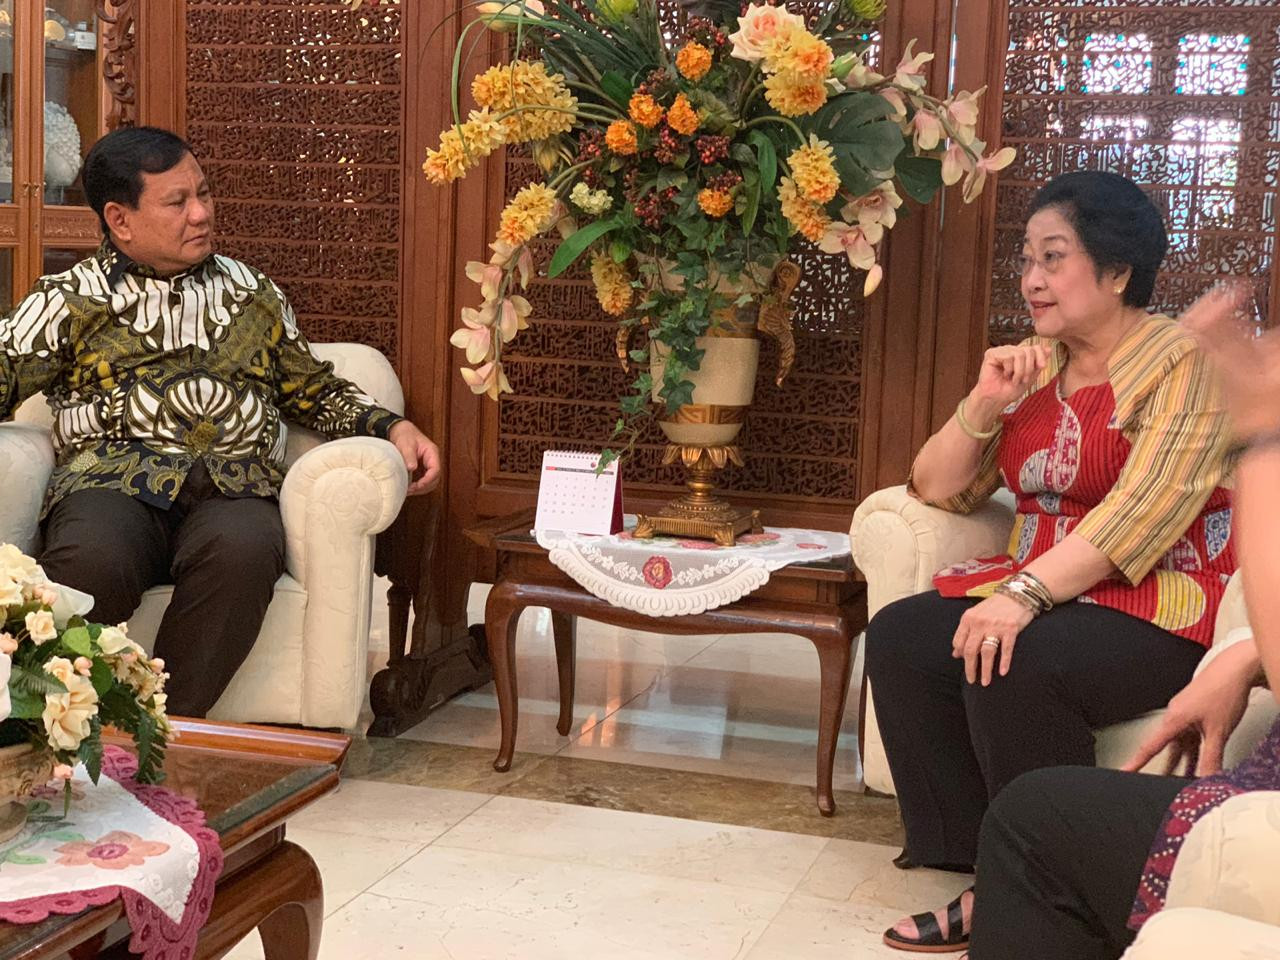 'We can't force or beg': Gerindra wants other parties in ruling camp to open doors